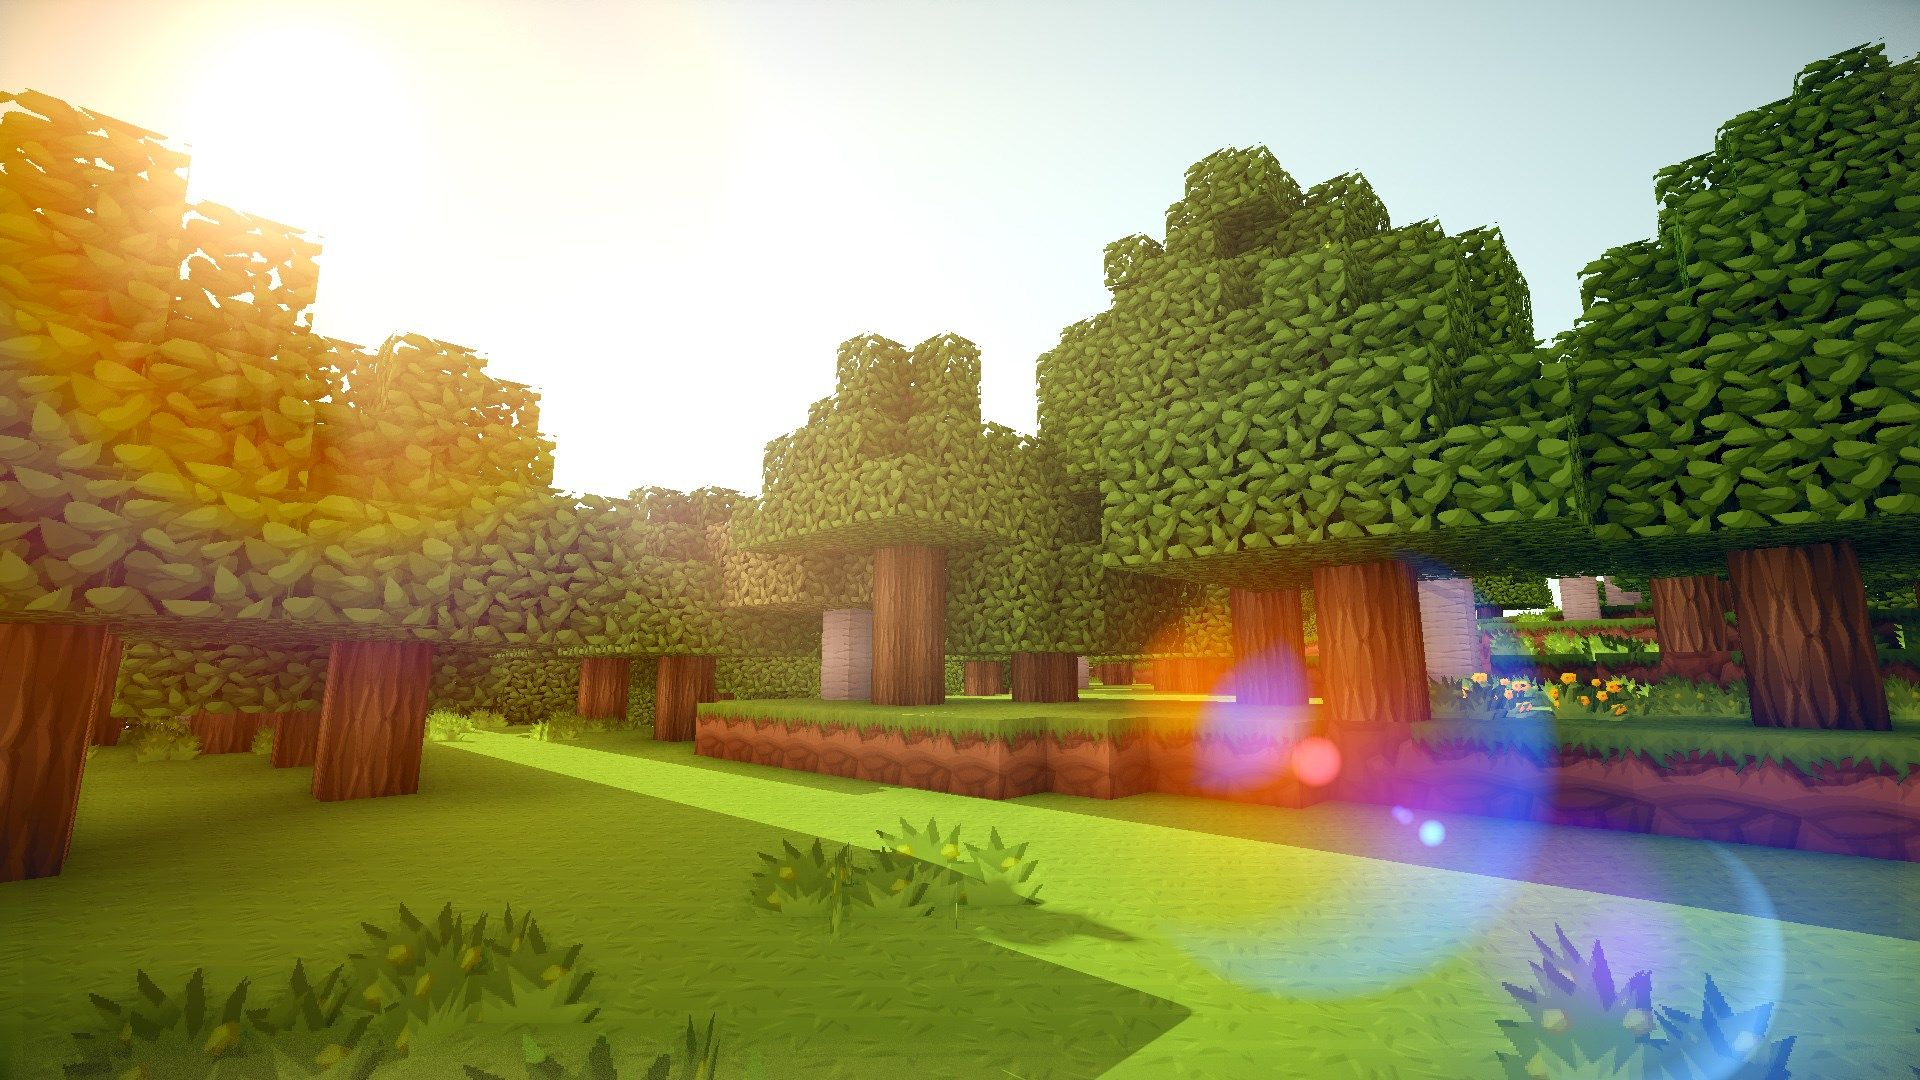 Image by Kevin Nguyen on Minecraft Minecraft wallpaper